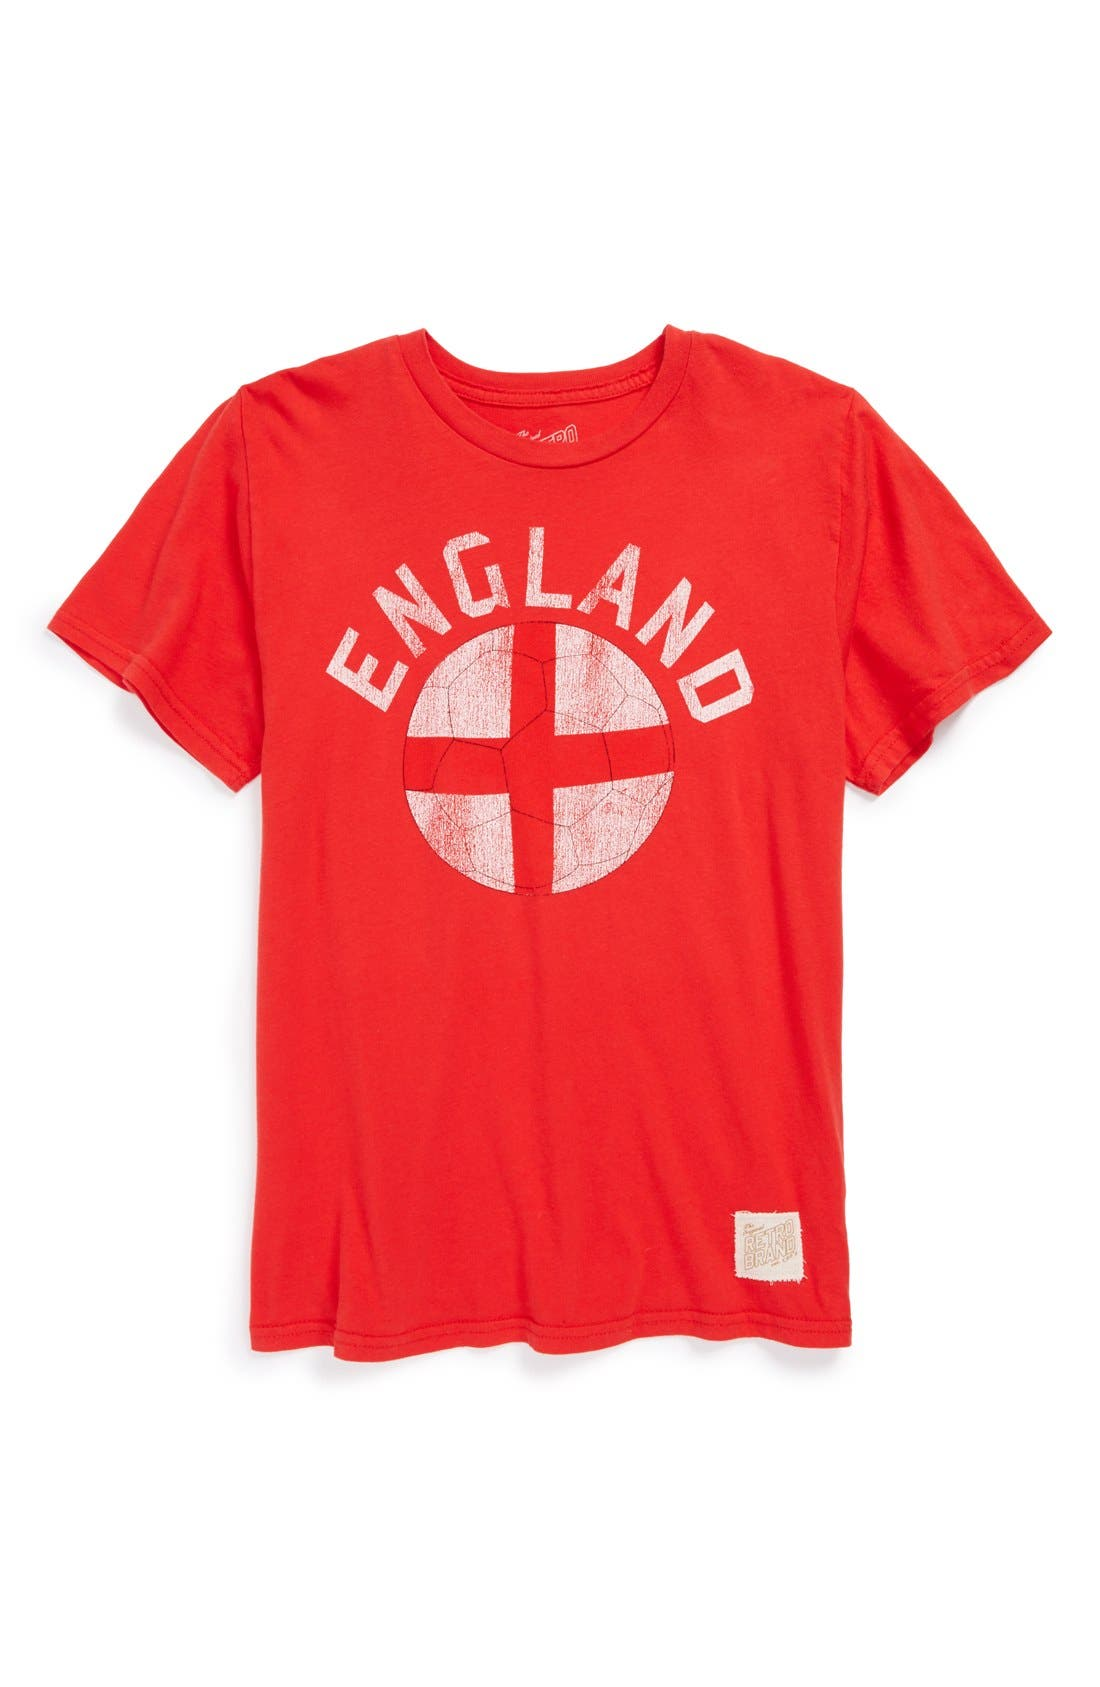 Alternate Image 1 Selected - Retro Brand 'England Soccer' Graphic T-Shirt (Big Boys)